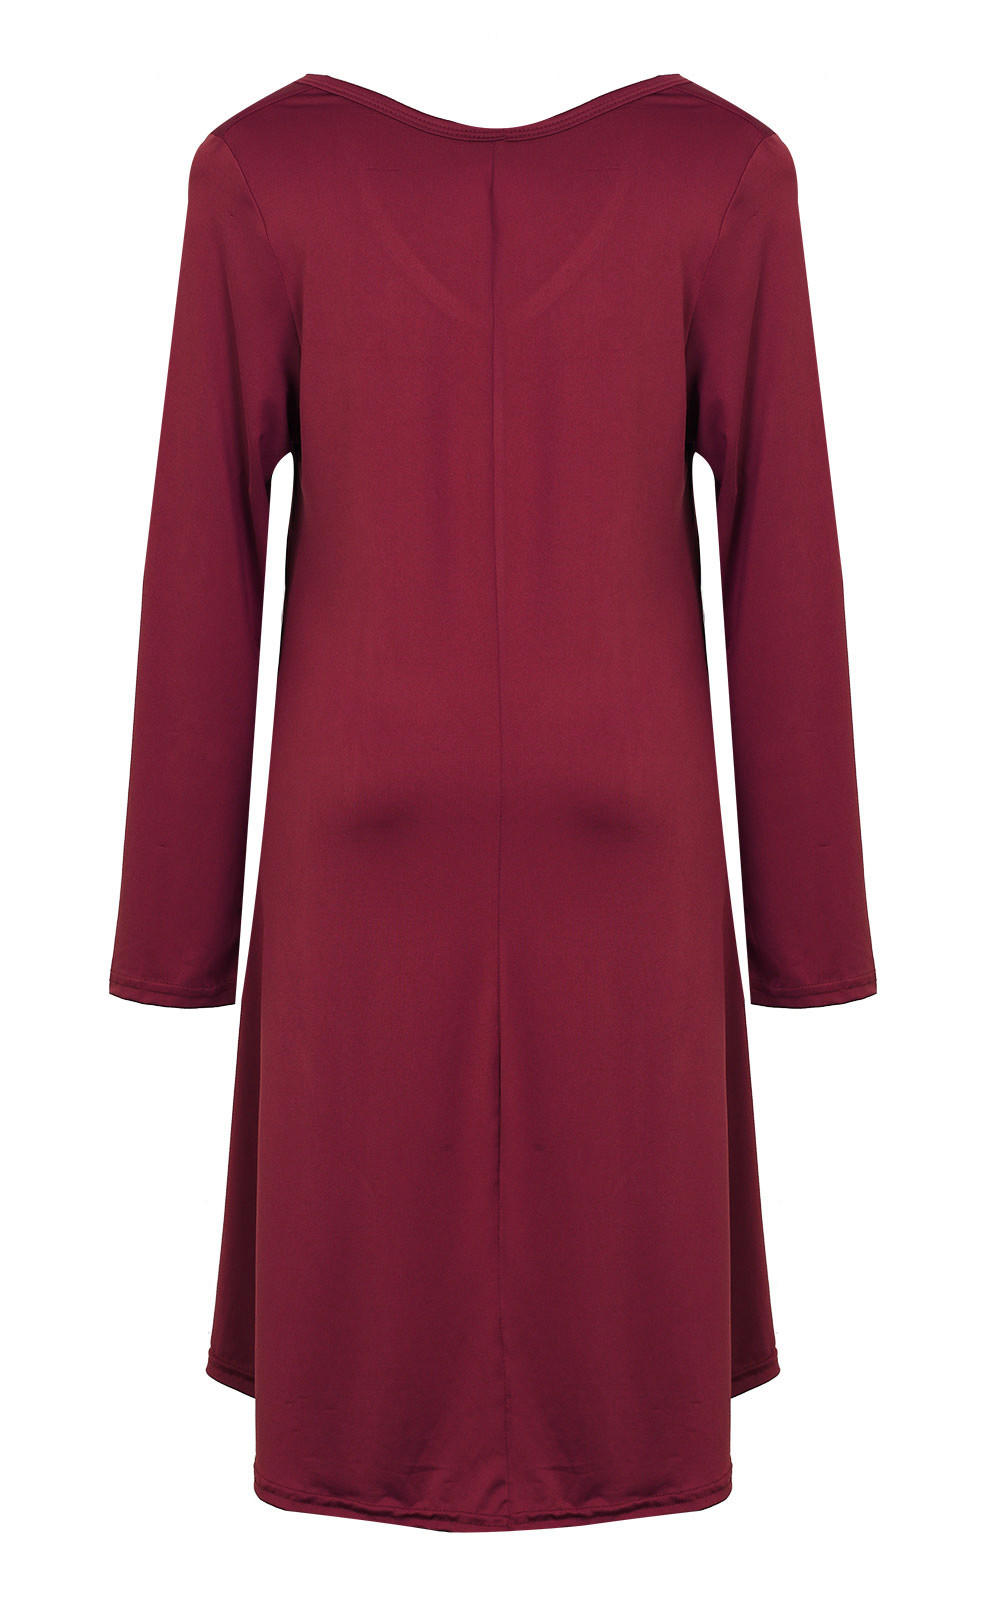 0746402115e62 Fashion Clothes vestidos Women Dress 2016 Autumn Winter Dress Female 100%  Cotton O-neck Long Sleeve Dress Woolen Dresses